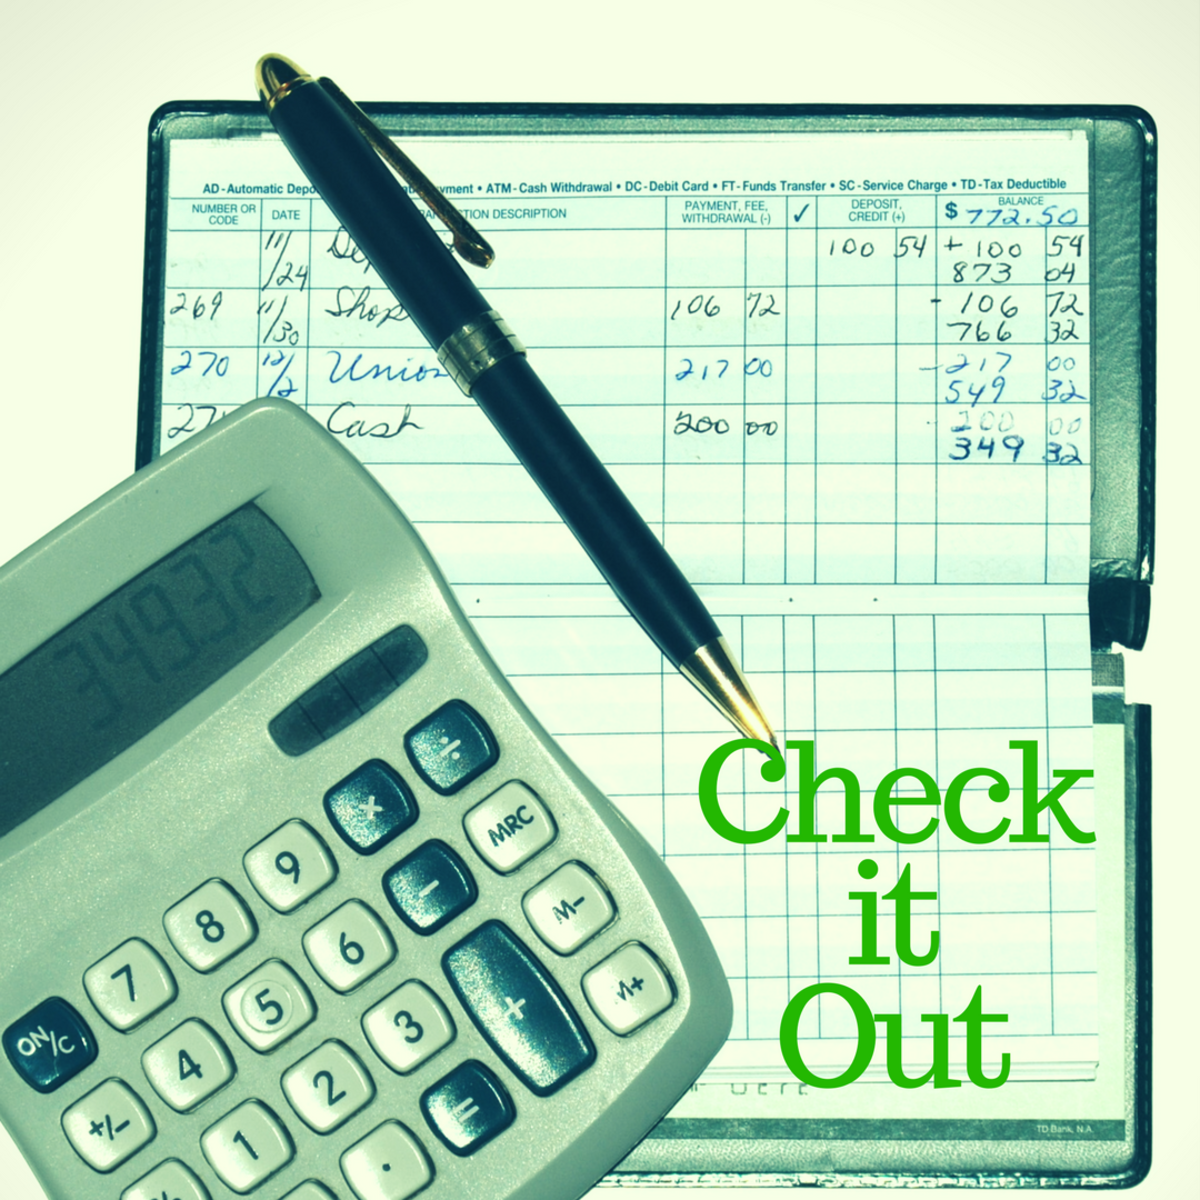 A business checking account will make your accounting easier (and keep you legal!)